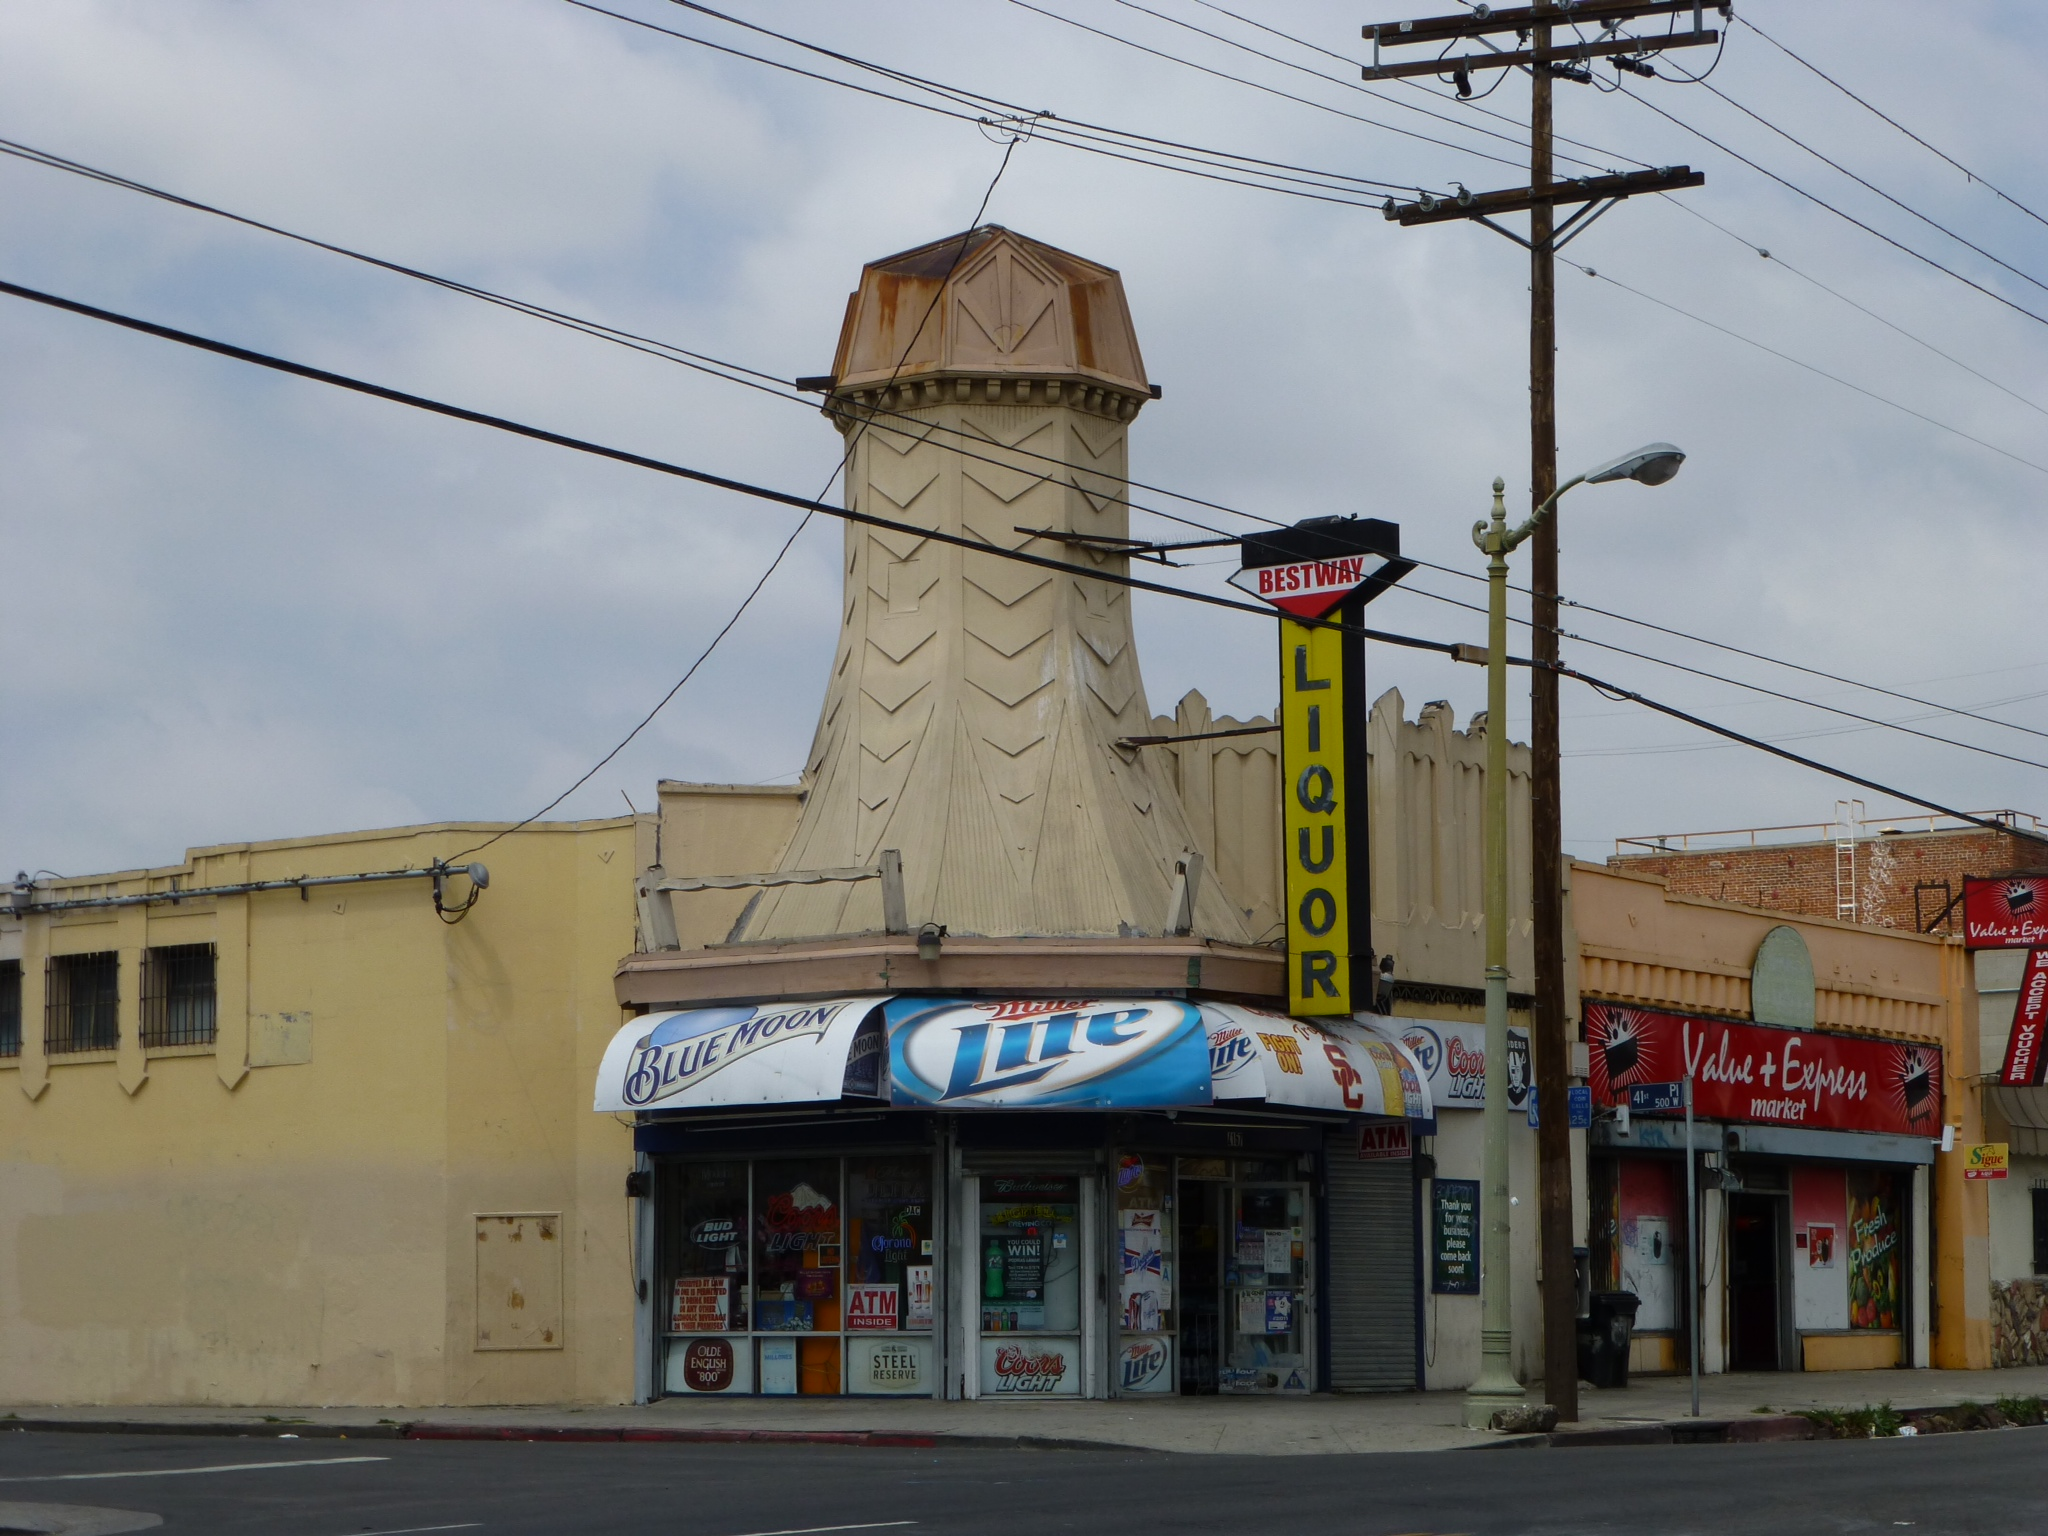 Figure 1: Contemporary view of former Van de Kamp's bakery site now the Bestway Liquor store at 4157 South Figueroa